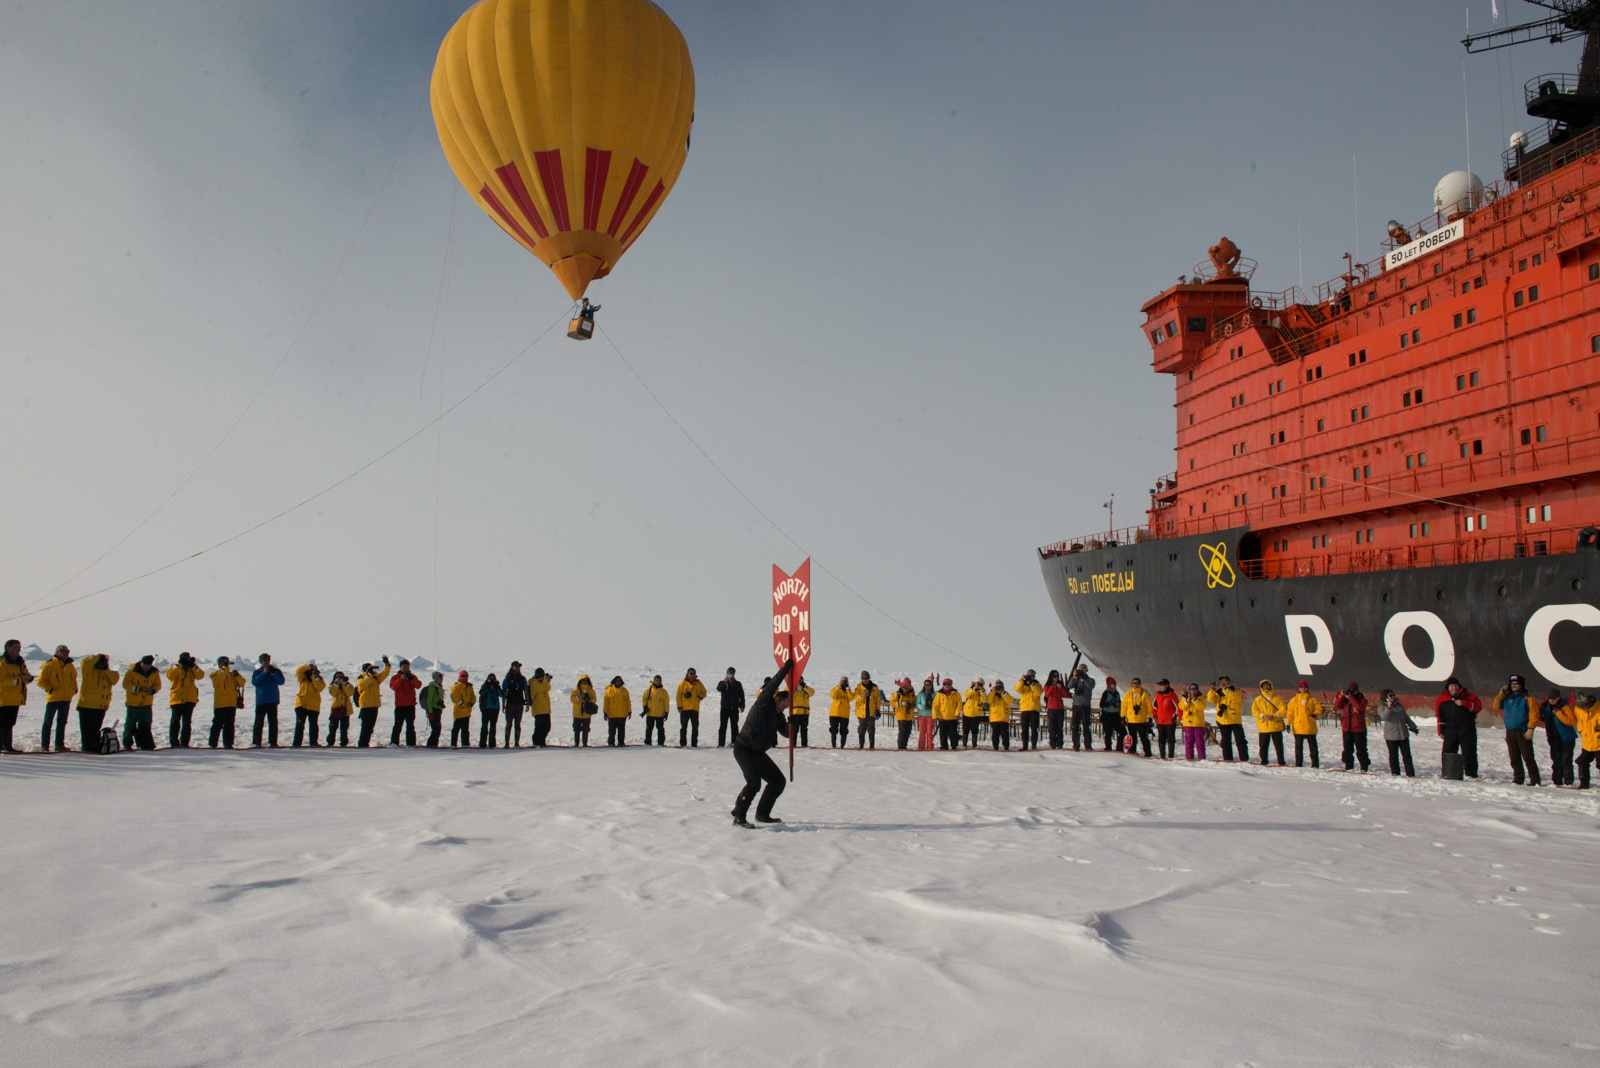 A hot air balloon flies high overhead as North Pole expedition passengers celebrate reaching their destination.